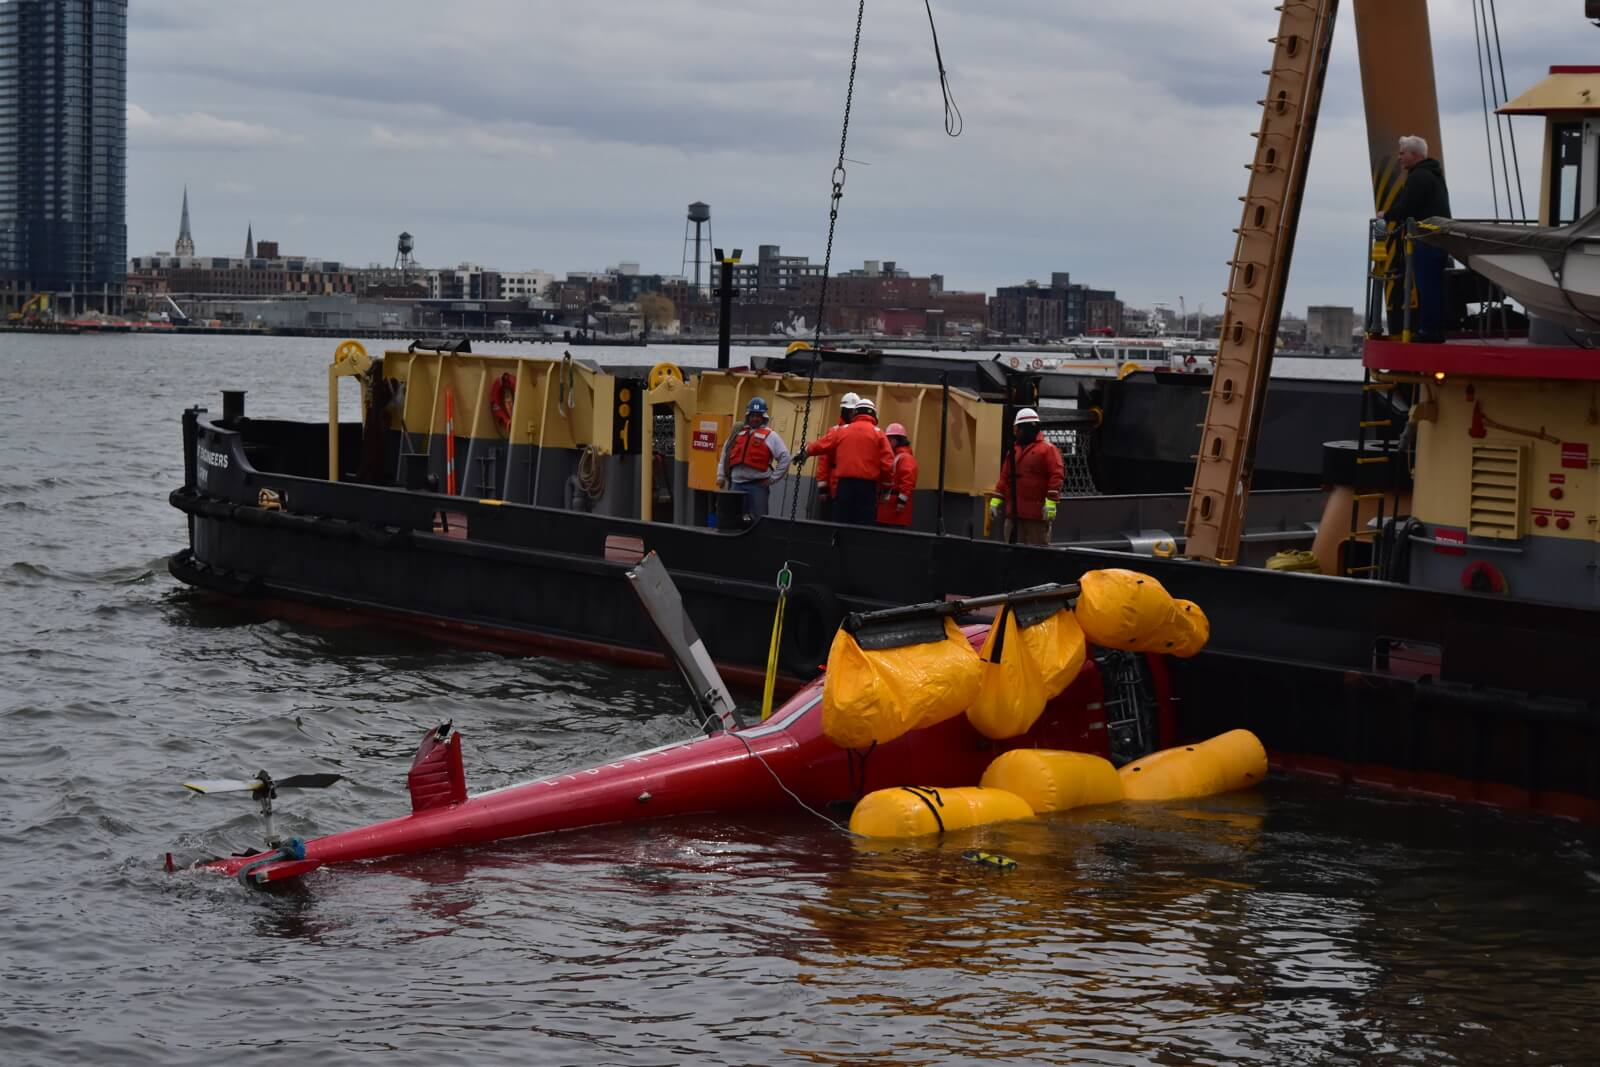 The accident helicopter was recovered from the East River on March 12. NTSB Photo